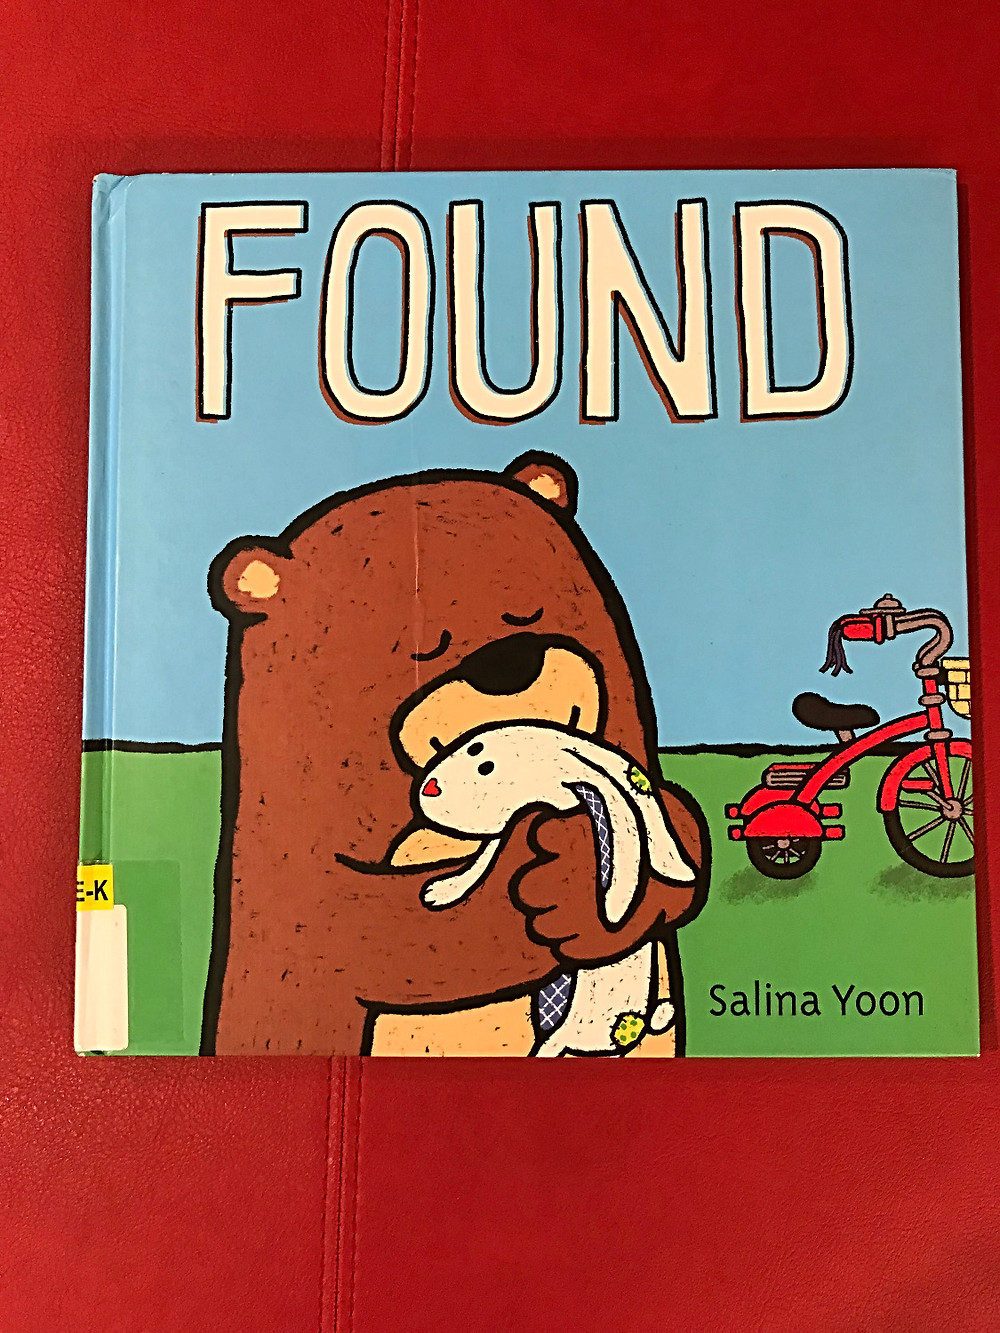 Found by Salina Yoon, NYPL, 53rd Street library,nyc kids, books for children